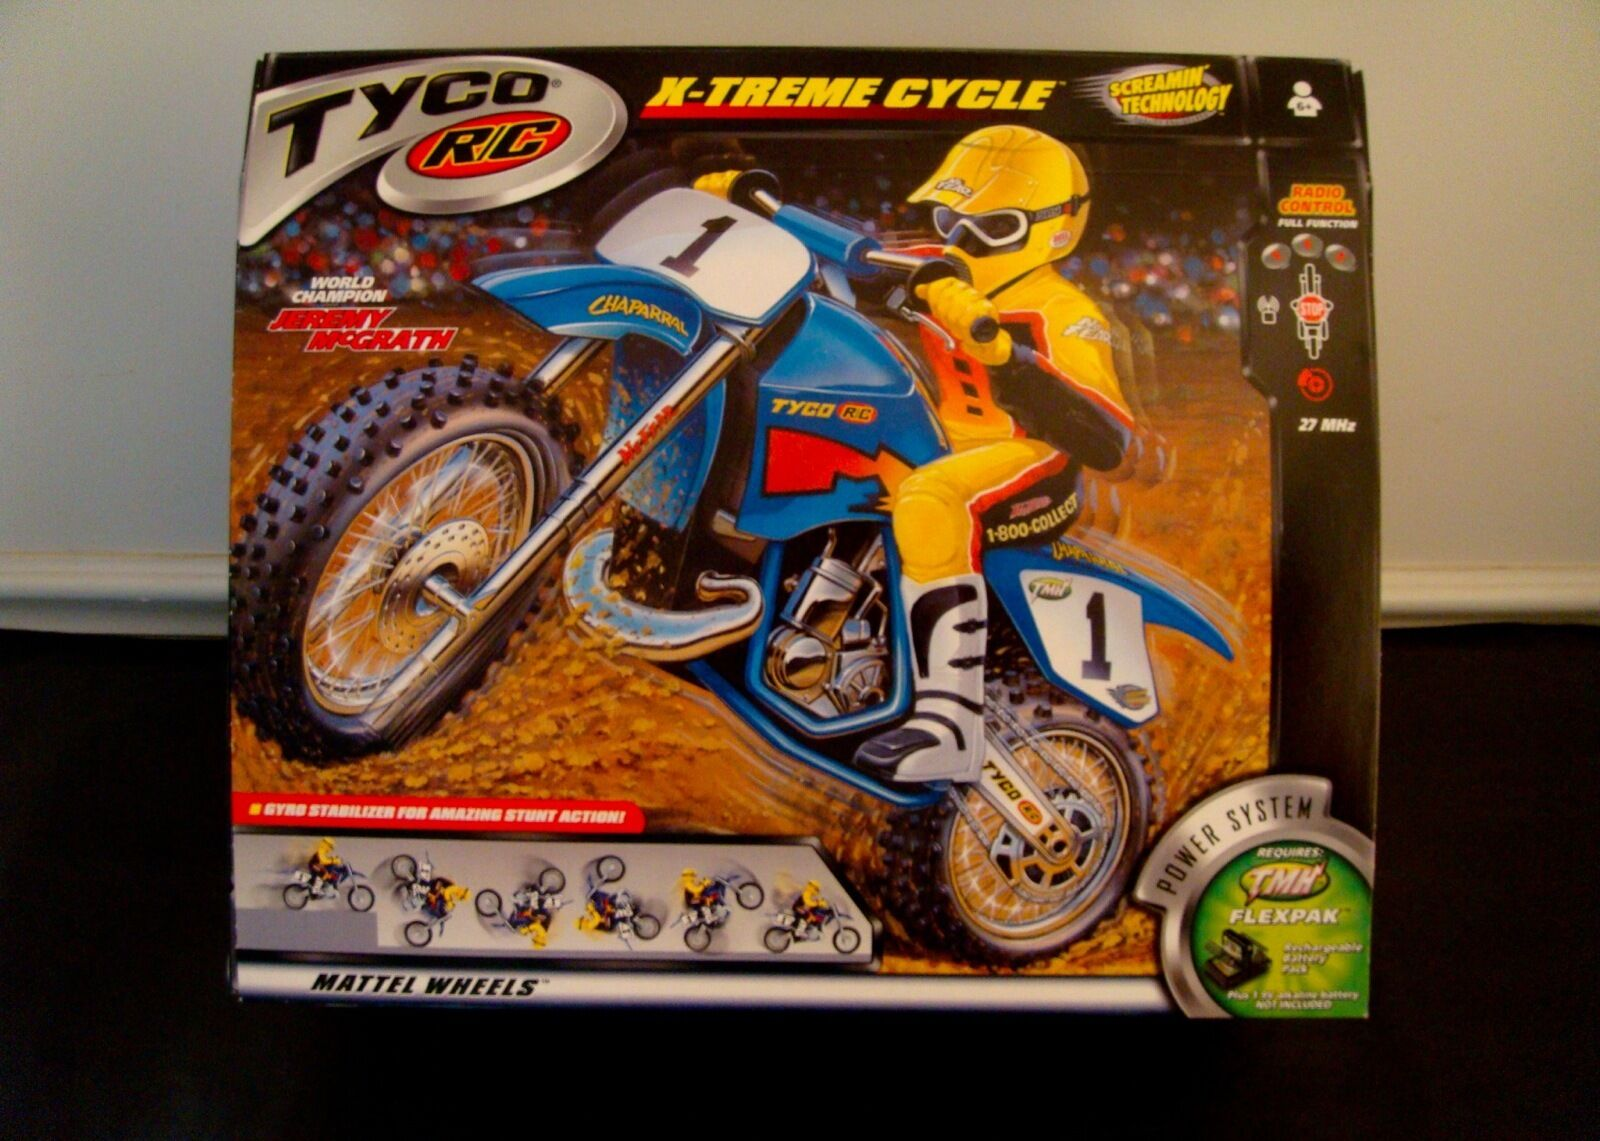 TYCO RC - RARE X-TREME CYCLE - TMH Flexpak BATTERY INCLUDED -  MIP